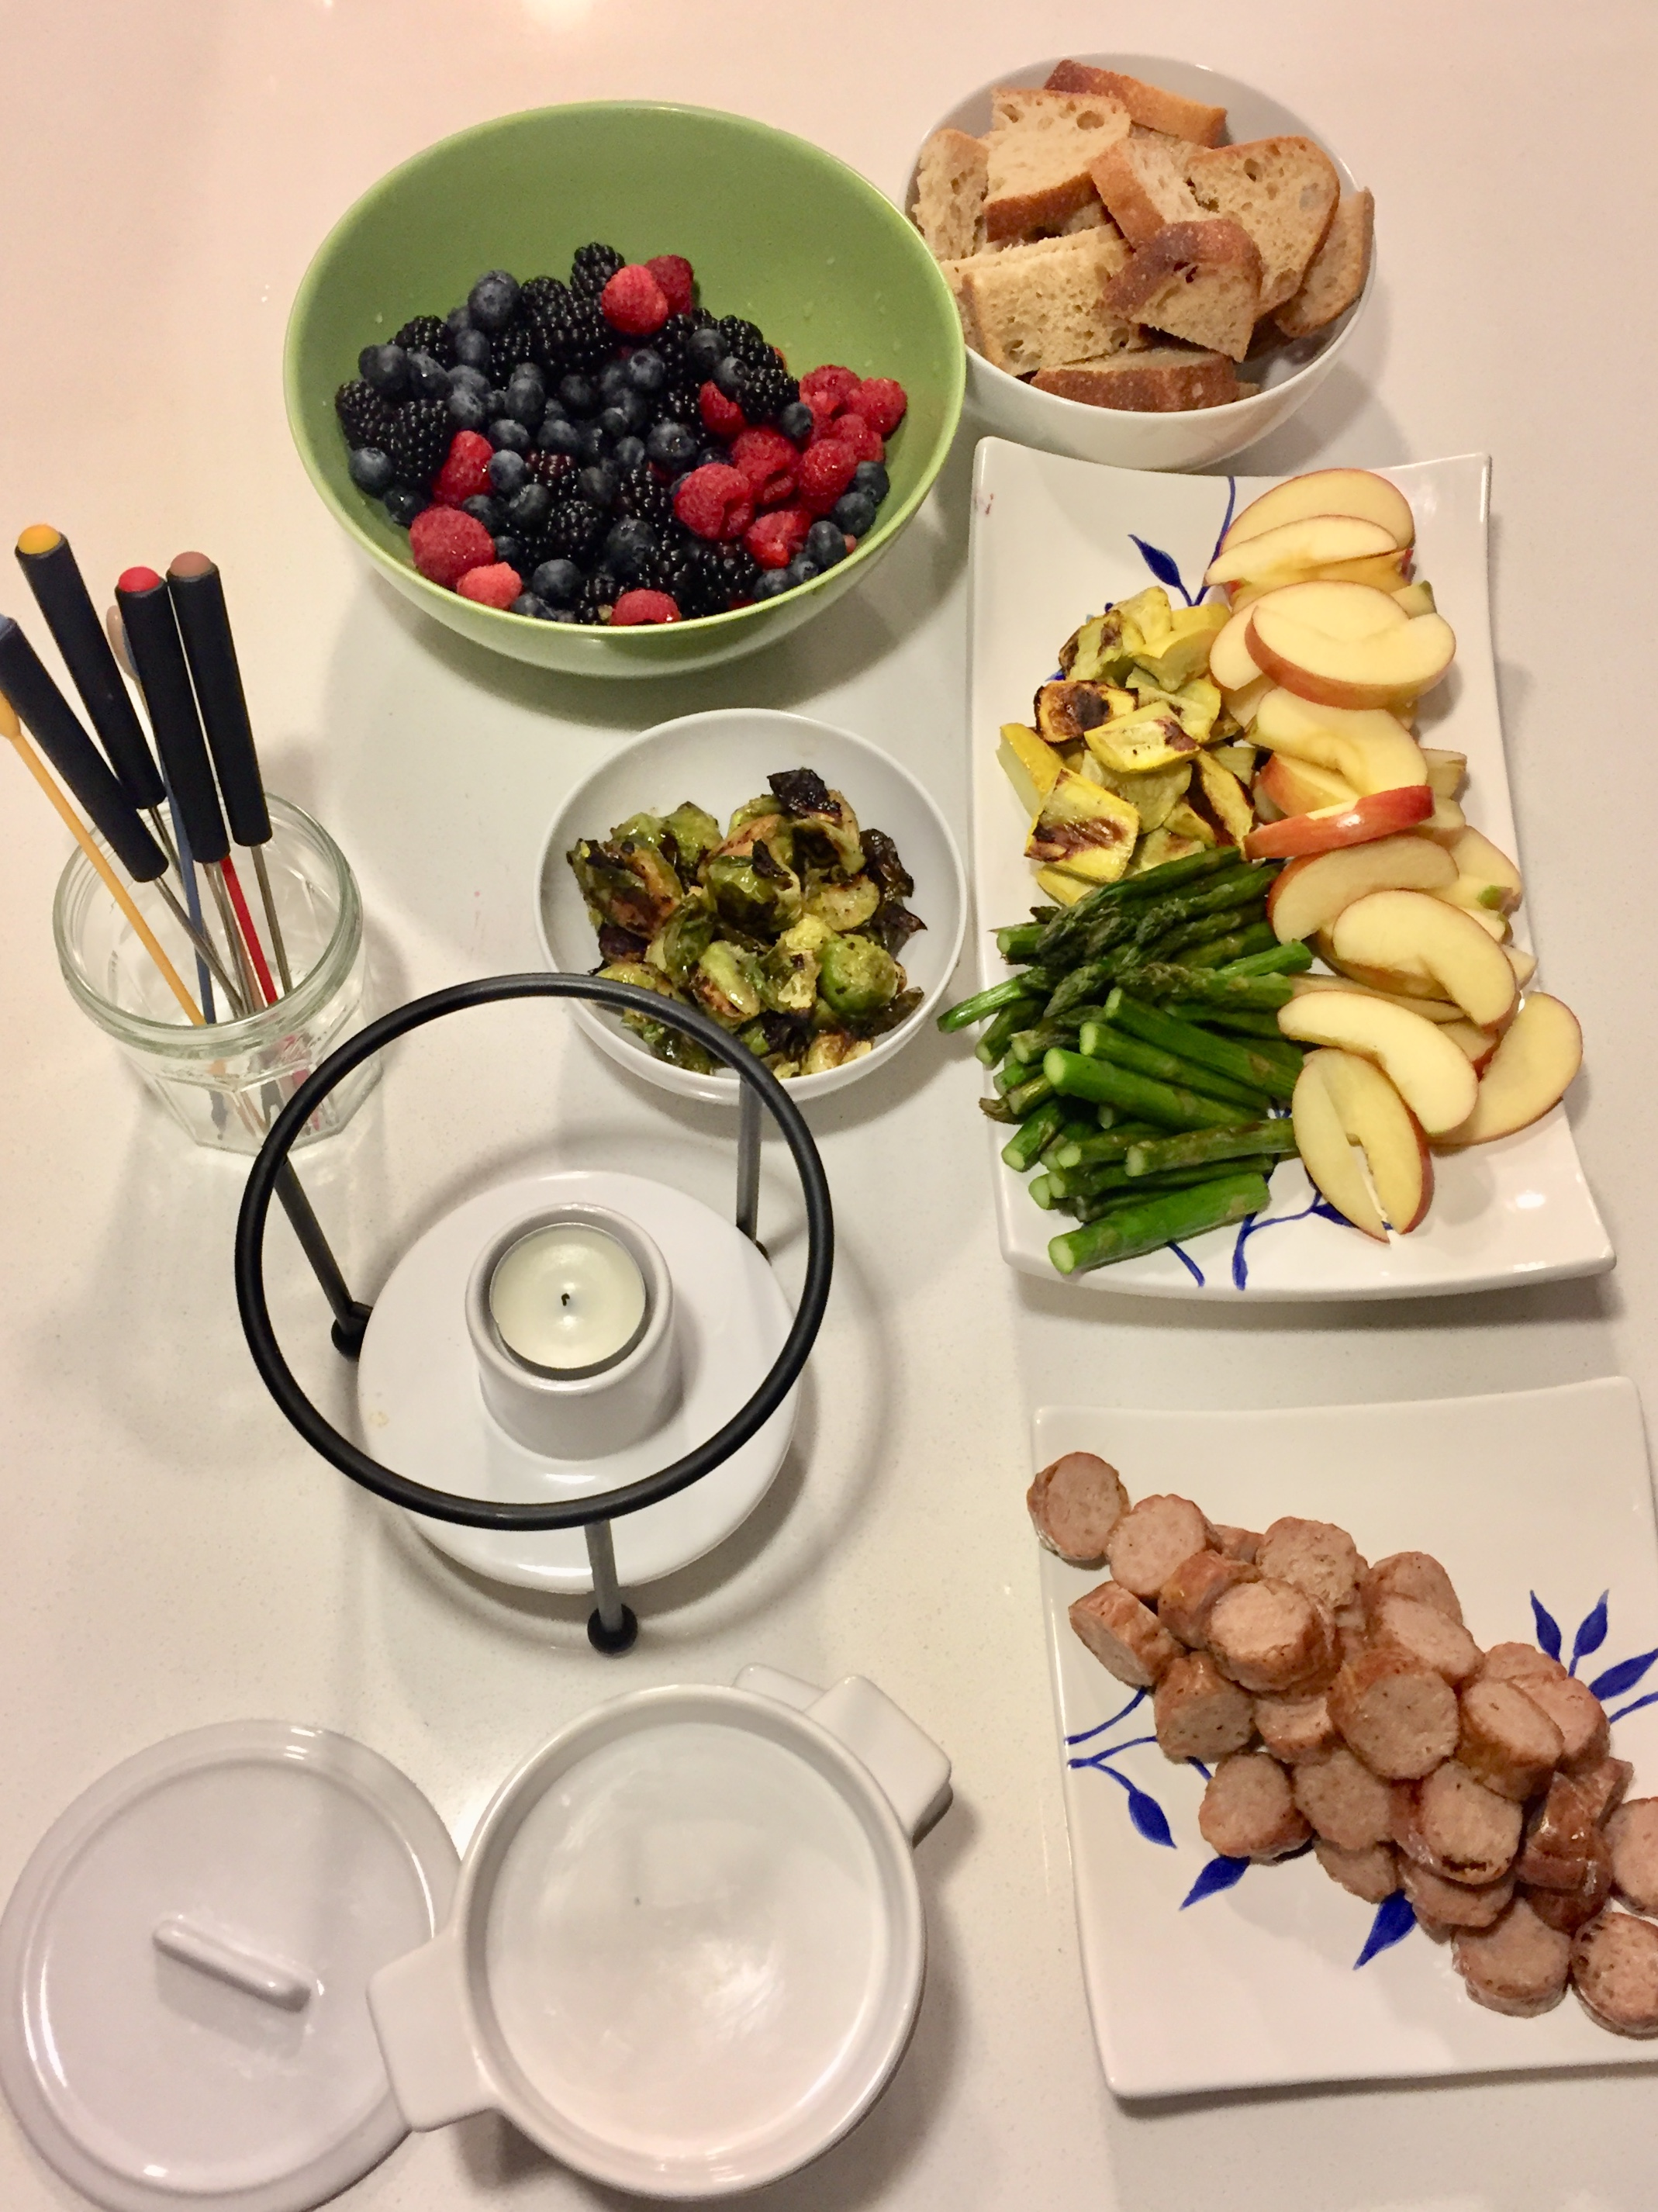 Fondue: Berries, whole wheat bread, apples.  Asparagus, brussels sprouts, yellow zucchini, and sausages (on the grill) and of course cheese fondue (not in the picture).